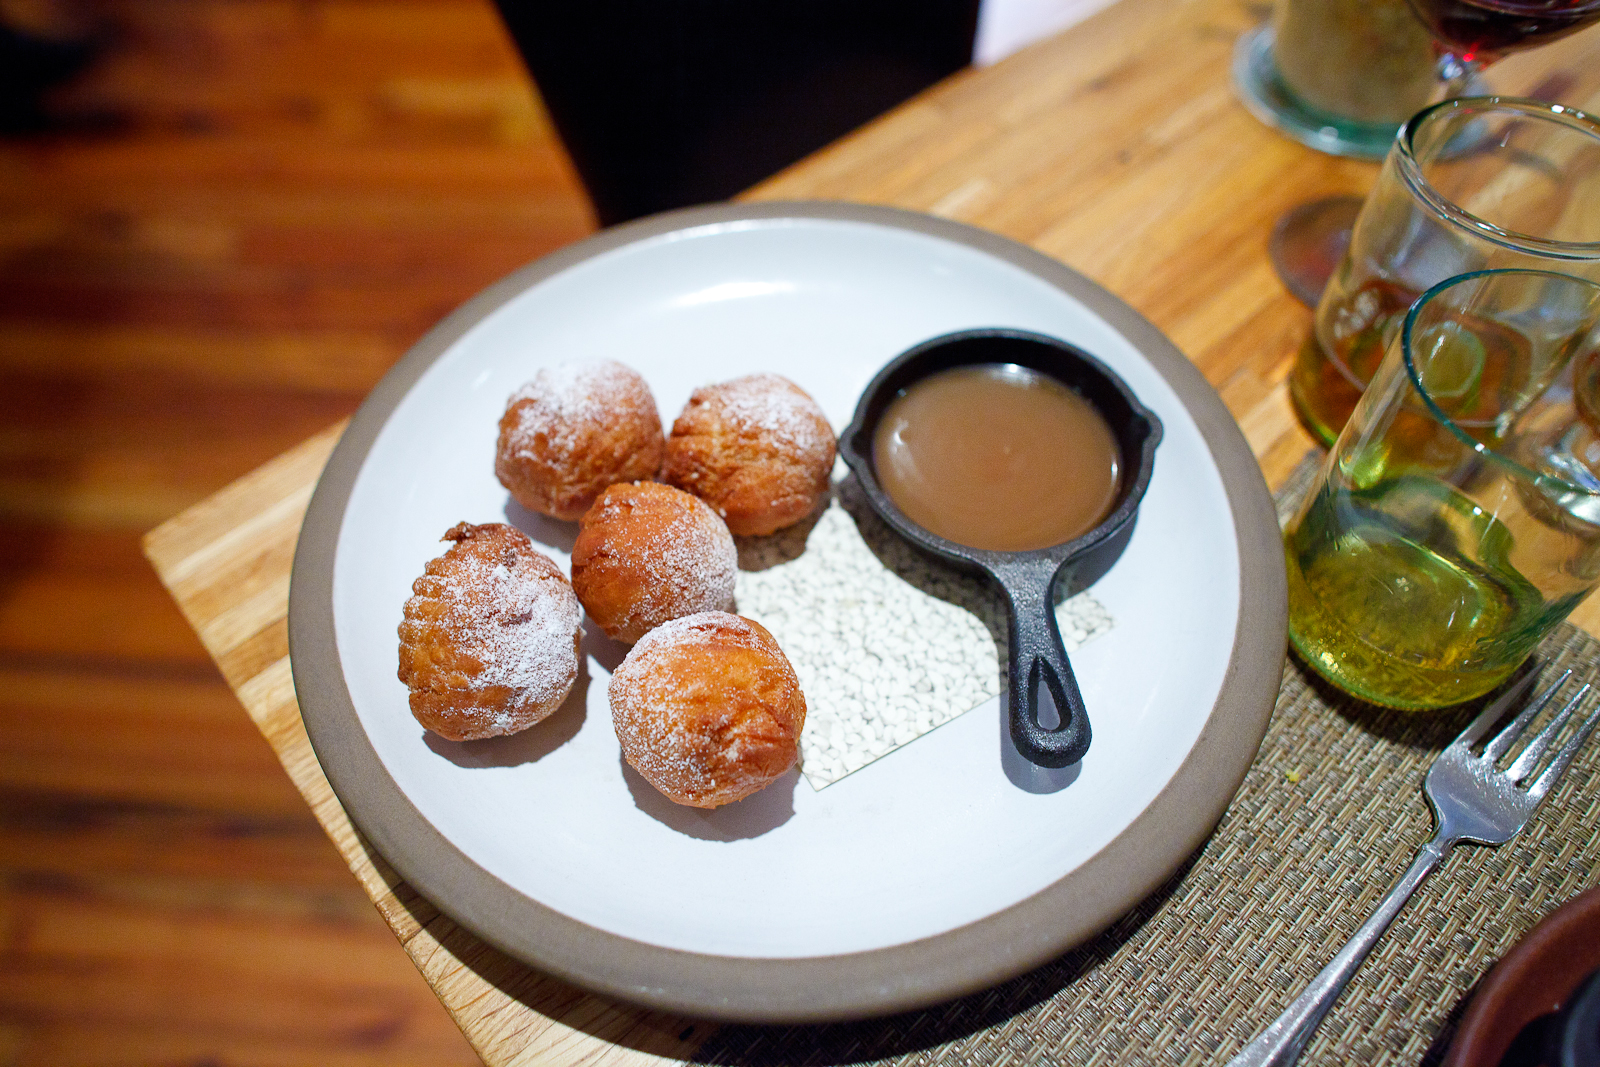 14th Course: Donut holes